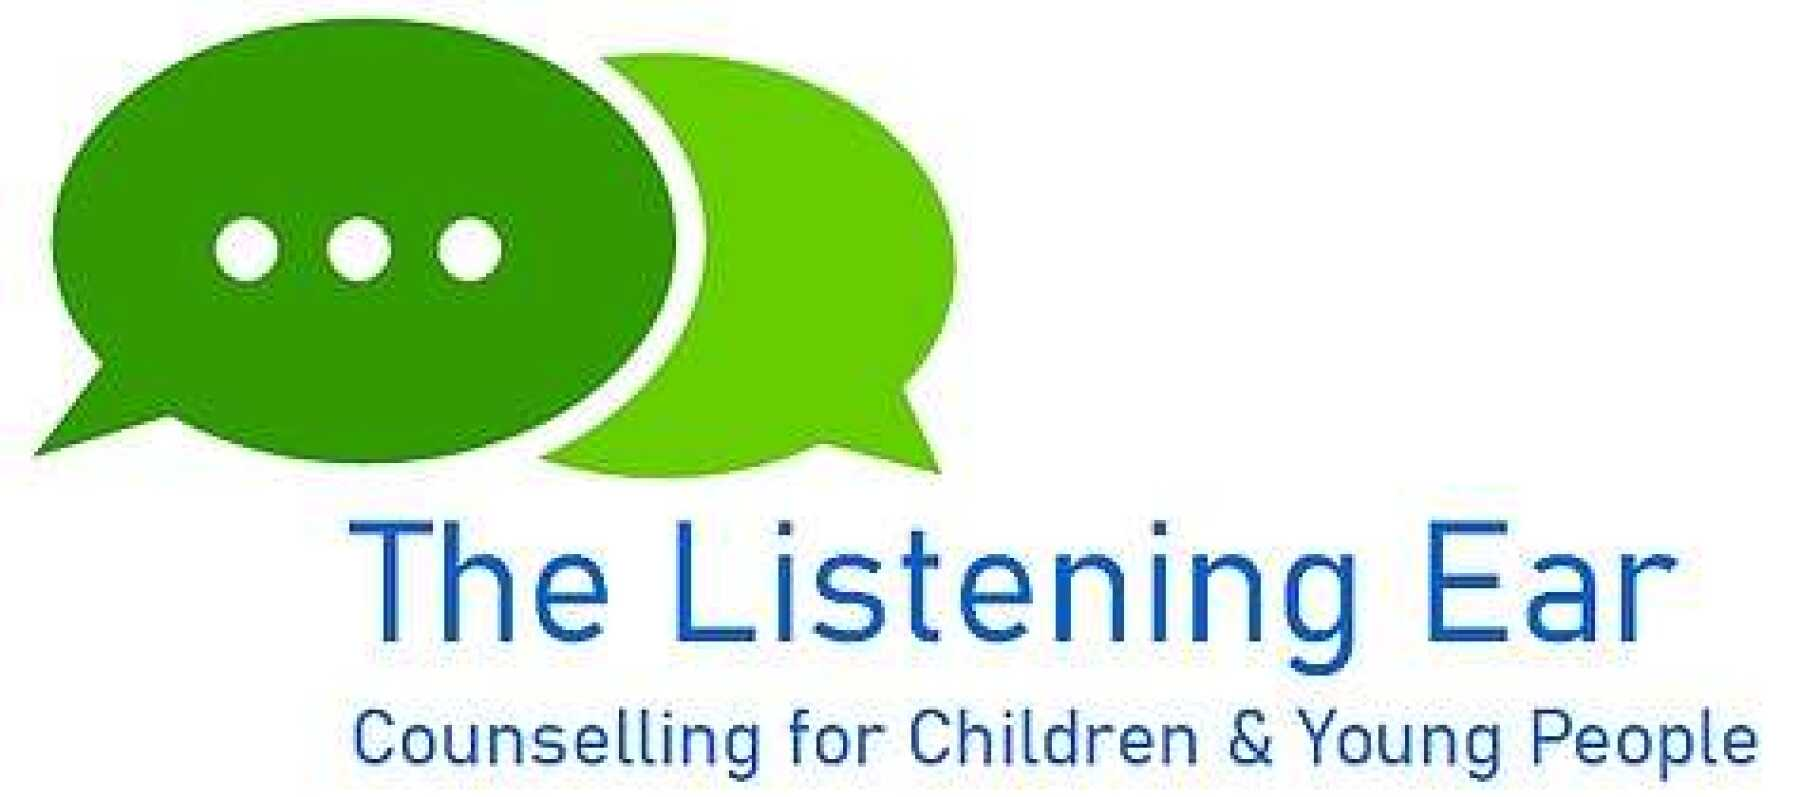 Featured Image for The Listening Ear